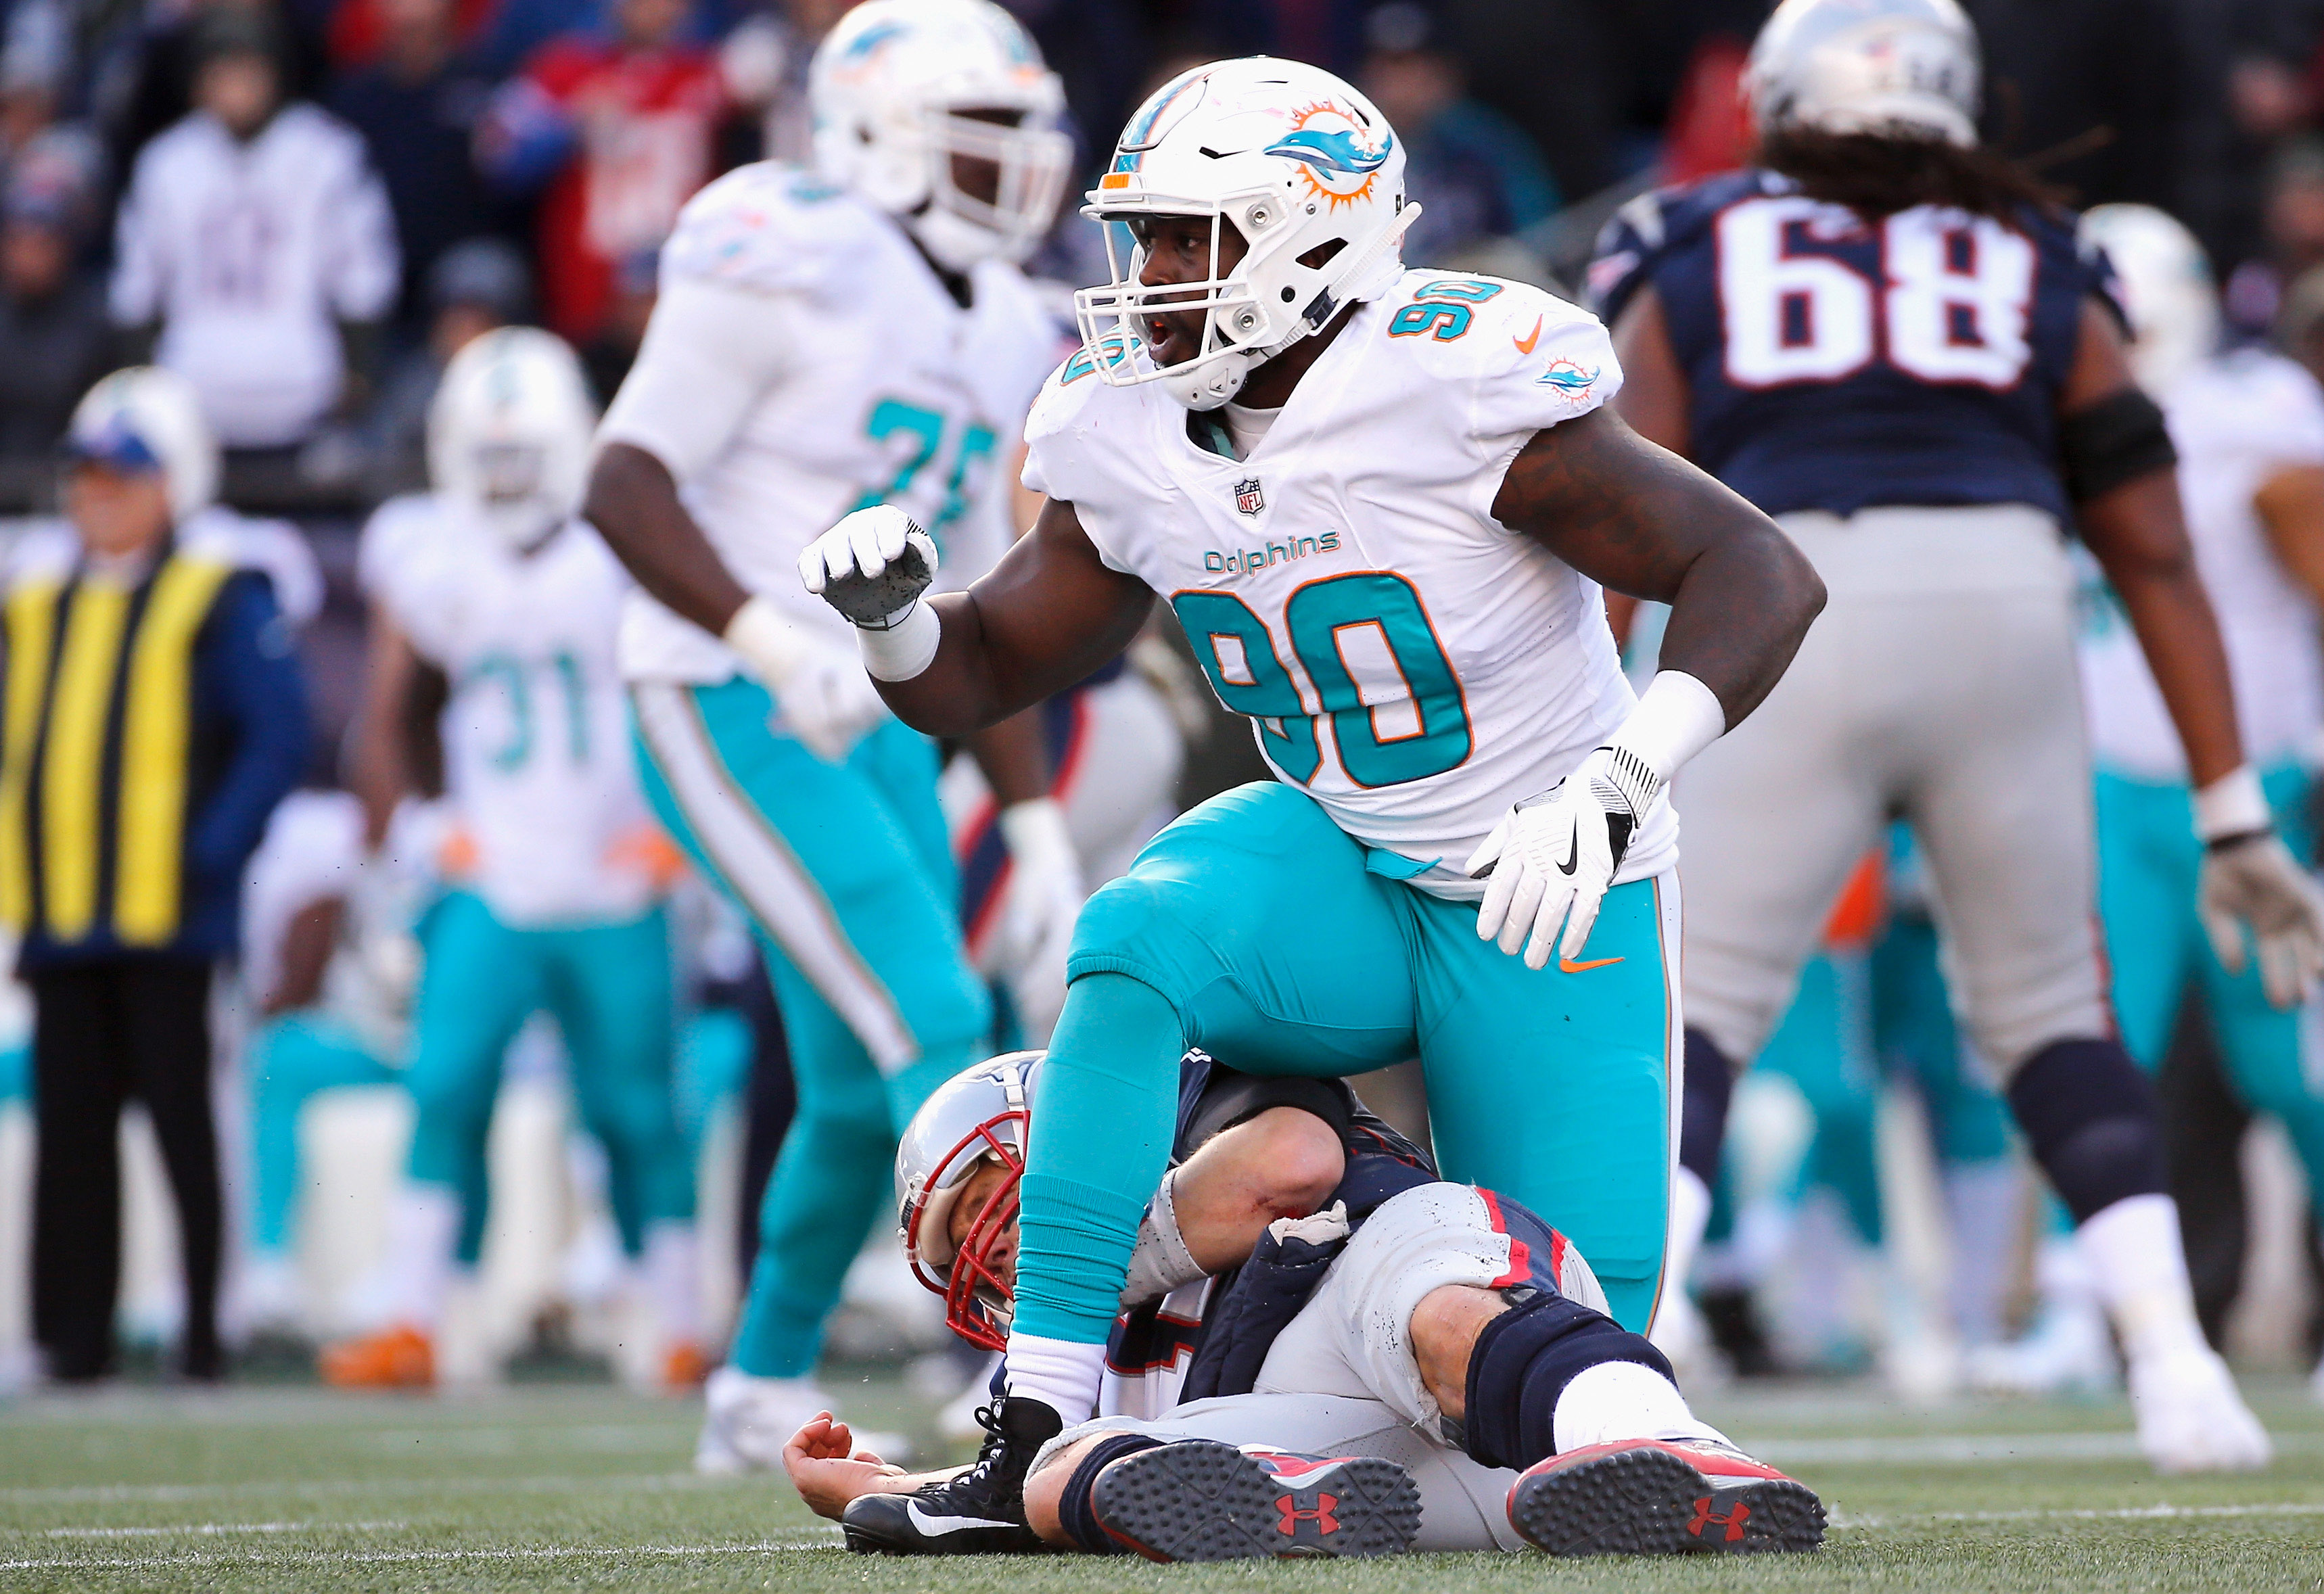 No one will be calling the Dolphins' Charles Harris a 'bust' after this season